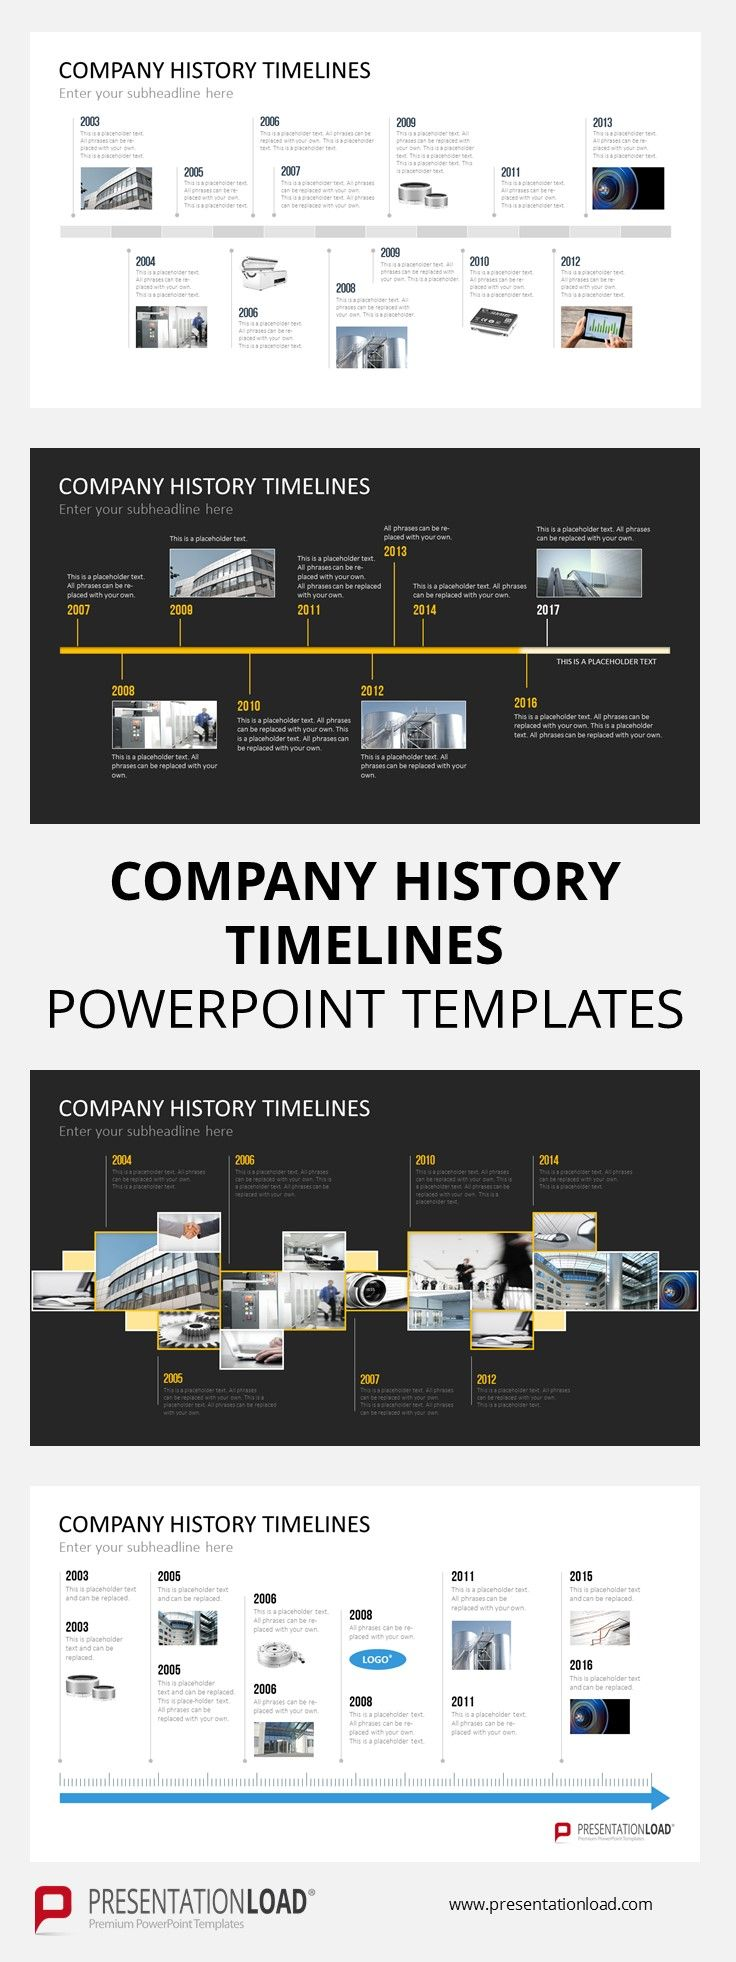 Need a quick overview of your company's history in your